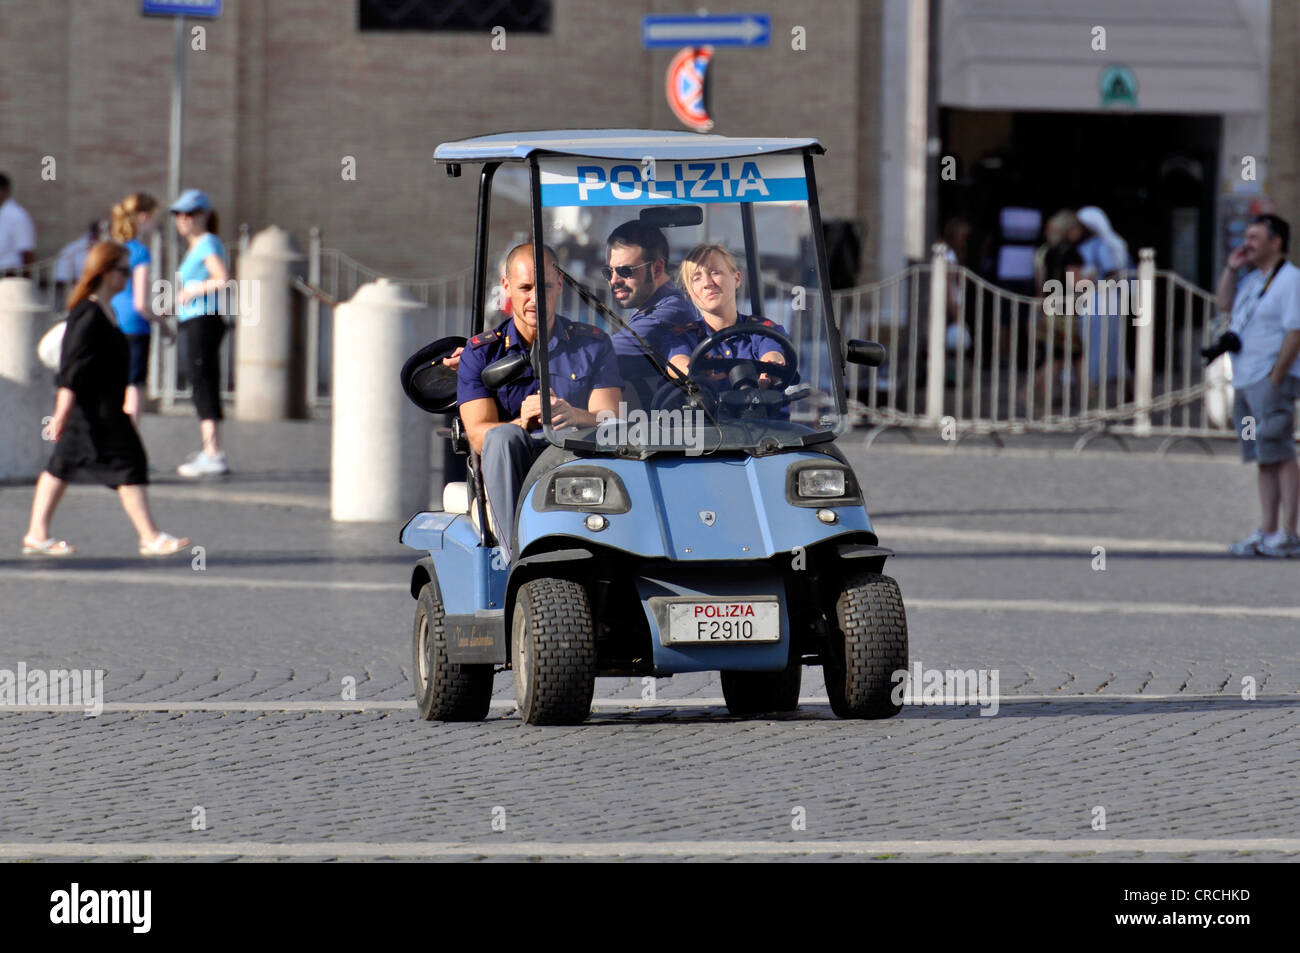 Police patrol in a golf cart on St. Peter's Square, Vatican, Rome, Lazio, Italy, Europe - Stock Image